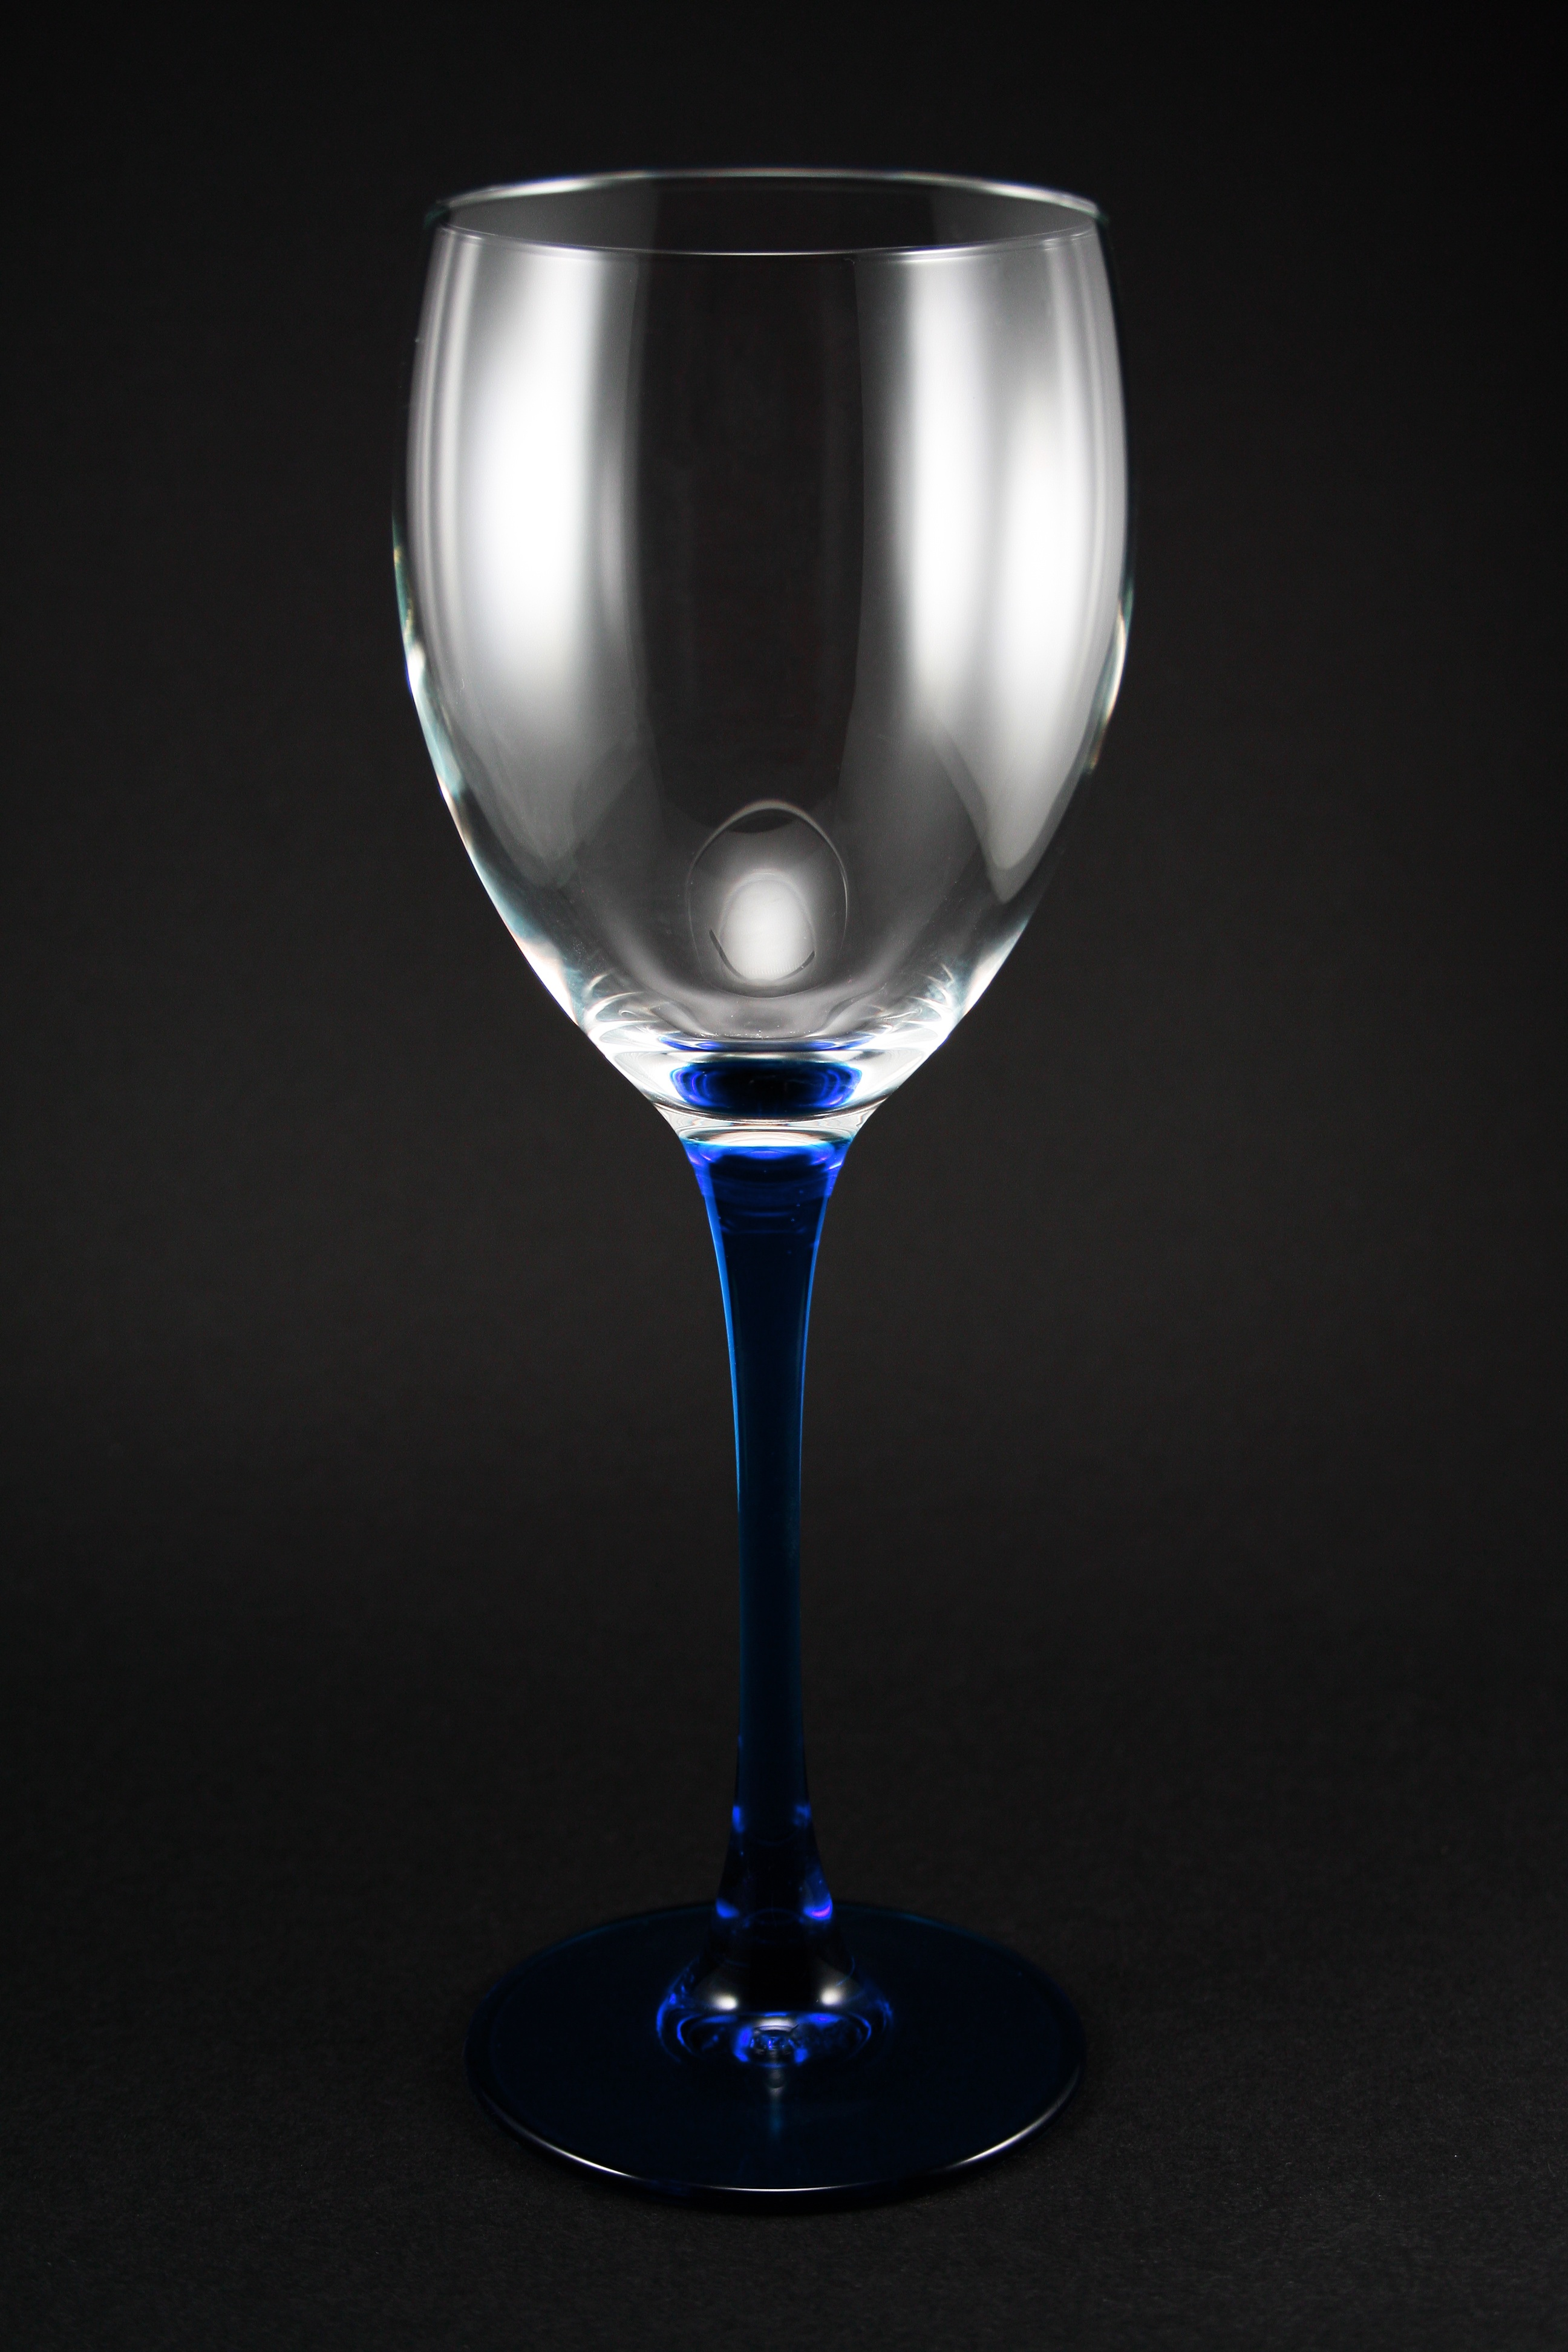 Transparent, Drink, Glass, Object, Party, HQ Photo